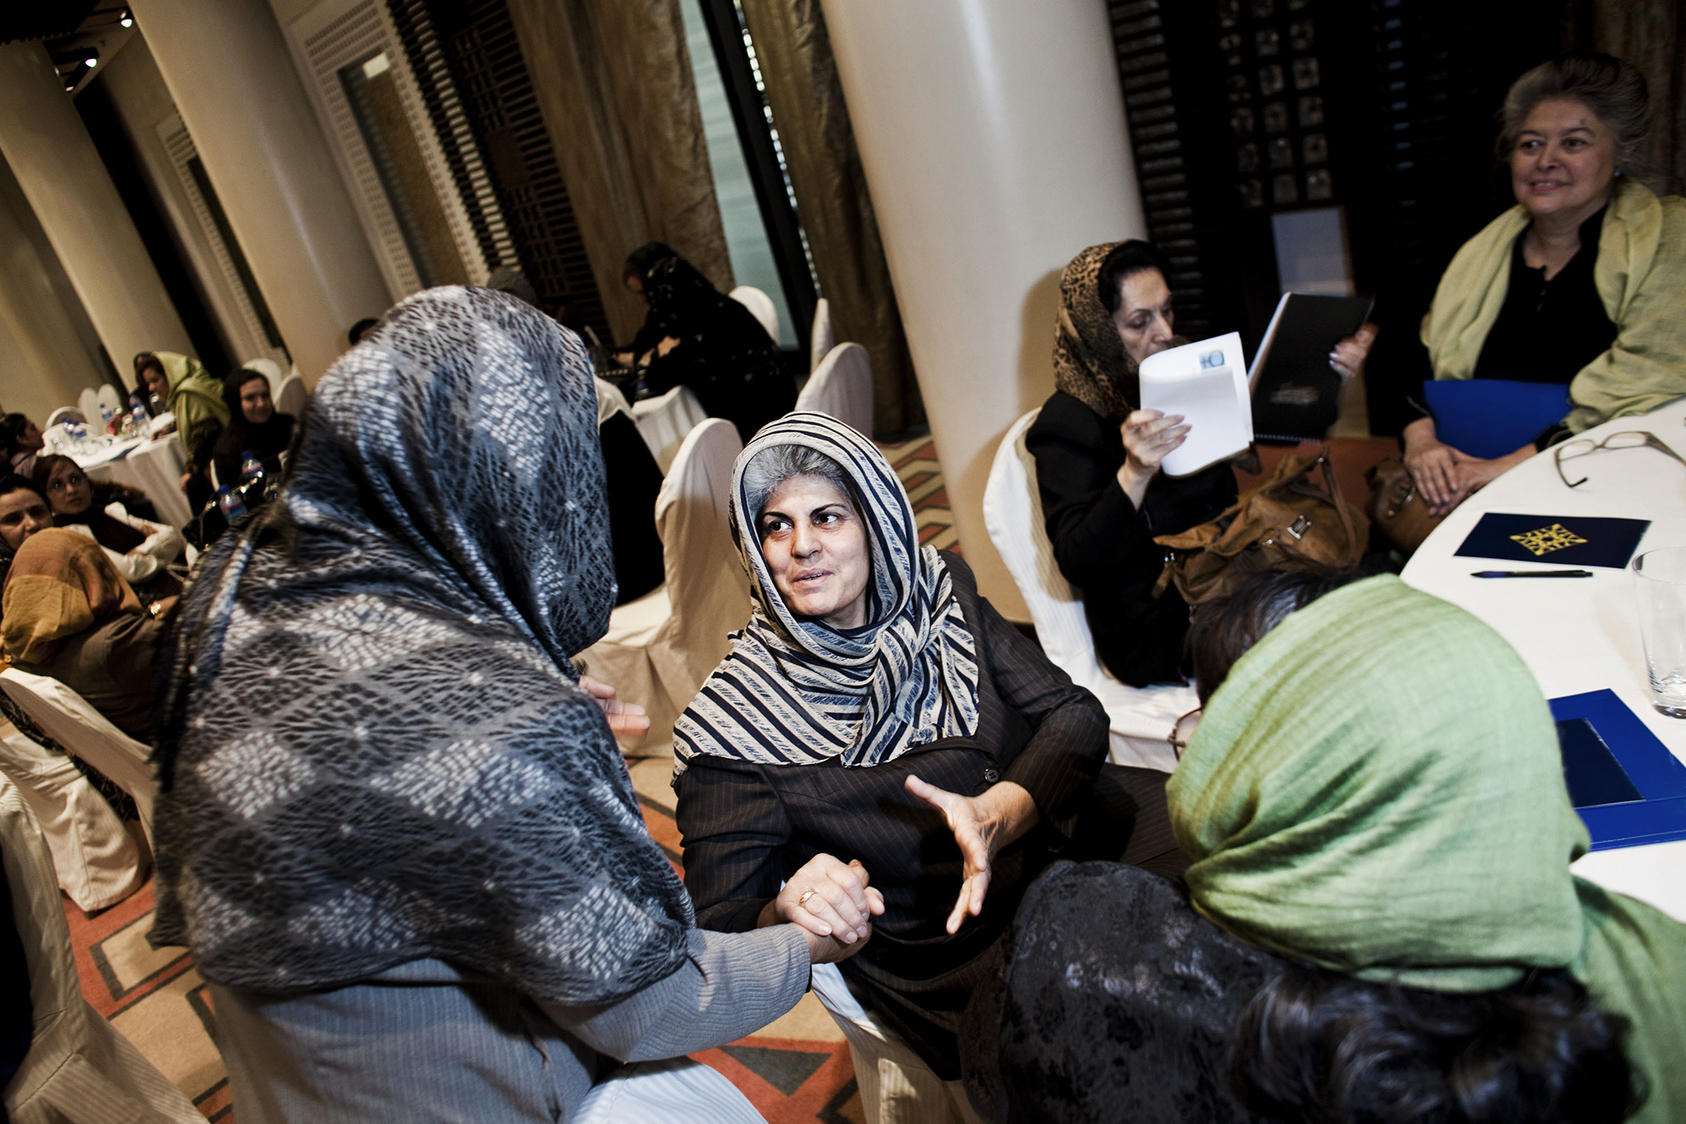 Afghan women's rights activists for years have warned leaders not to exclude women from an eventual peace process. Here they did so during a 2010 conference in Kabul. (Eros Hoagland/NY Times)